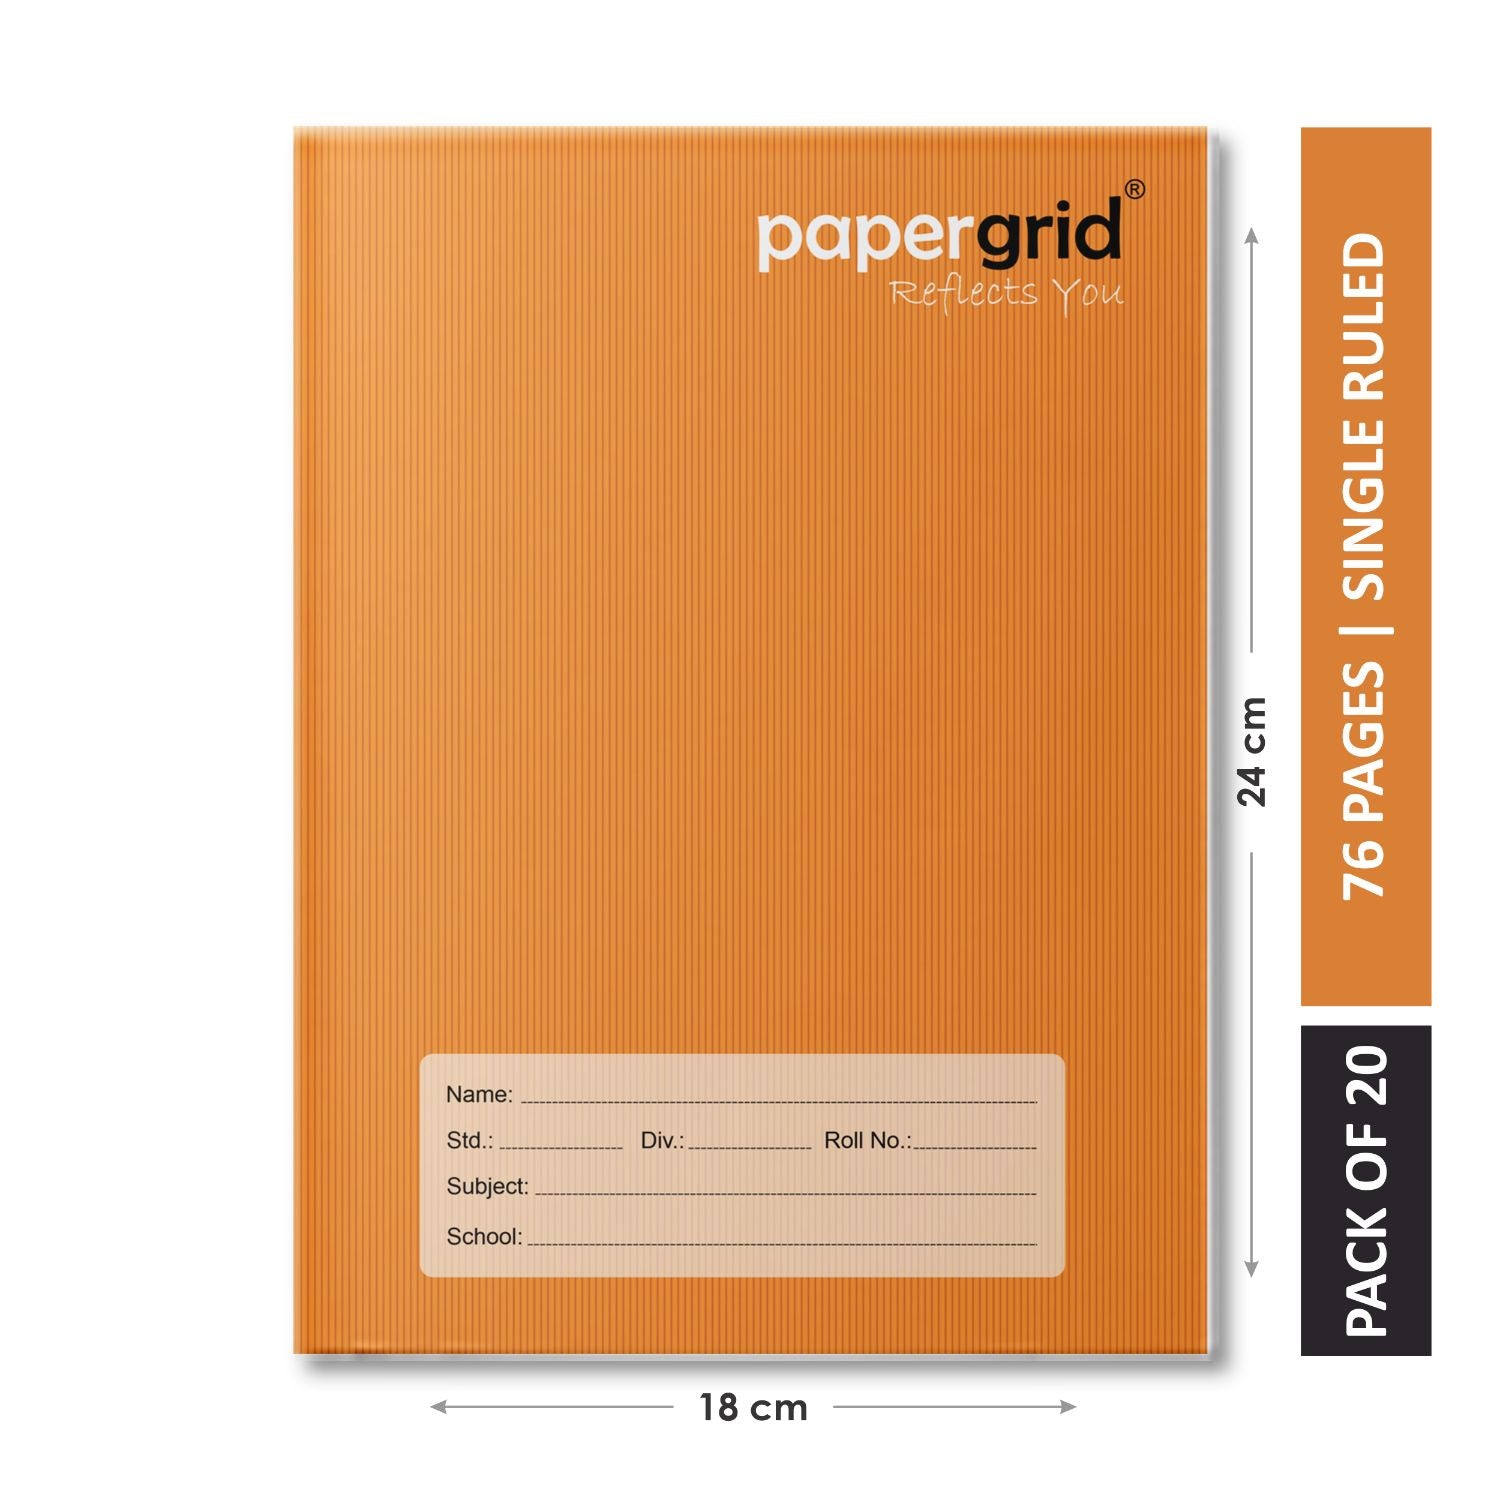 Papergrid Notebook - Brown Cover, King Size (24 cm x 18 cm), Single Line, 76 Pages, Soft Cover - Pack of 20